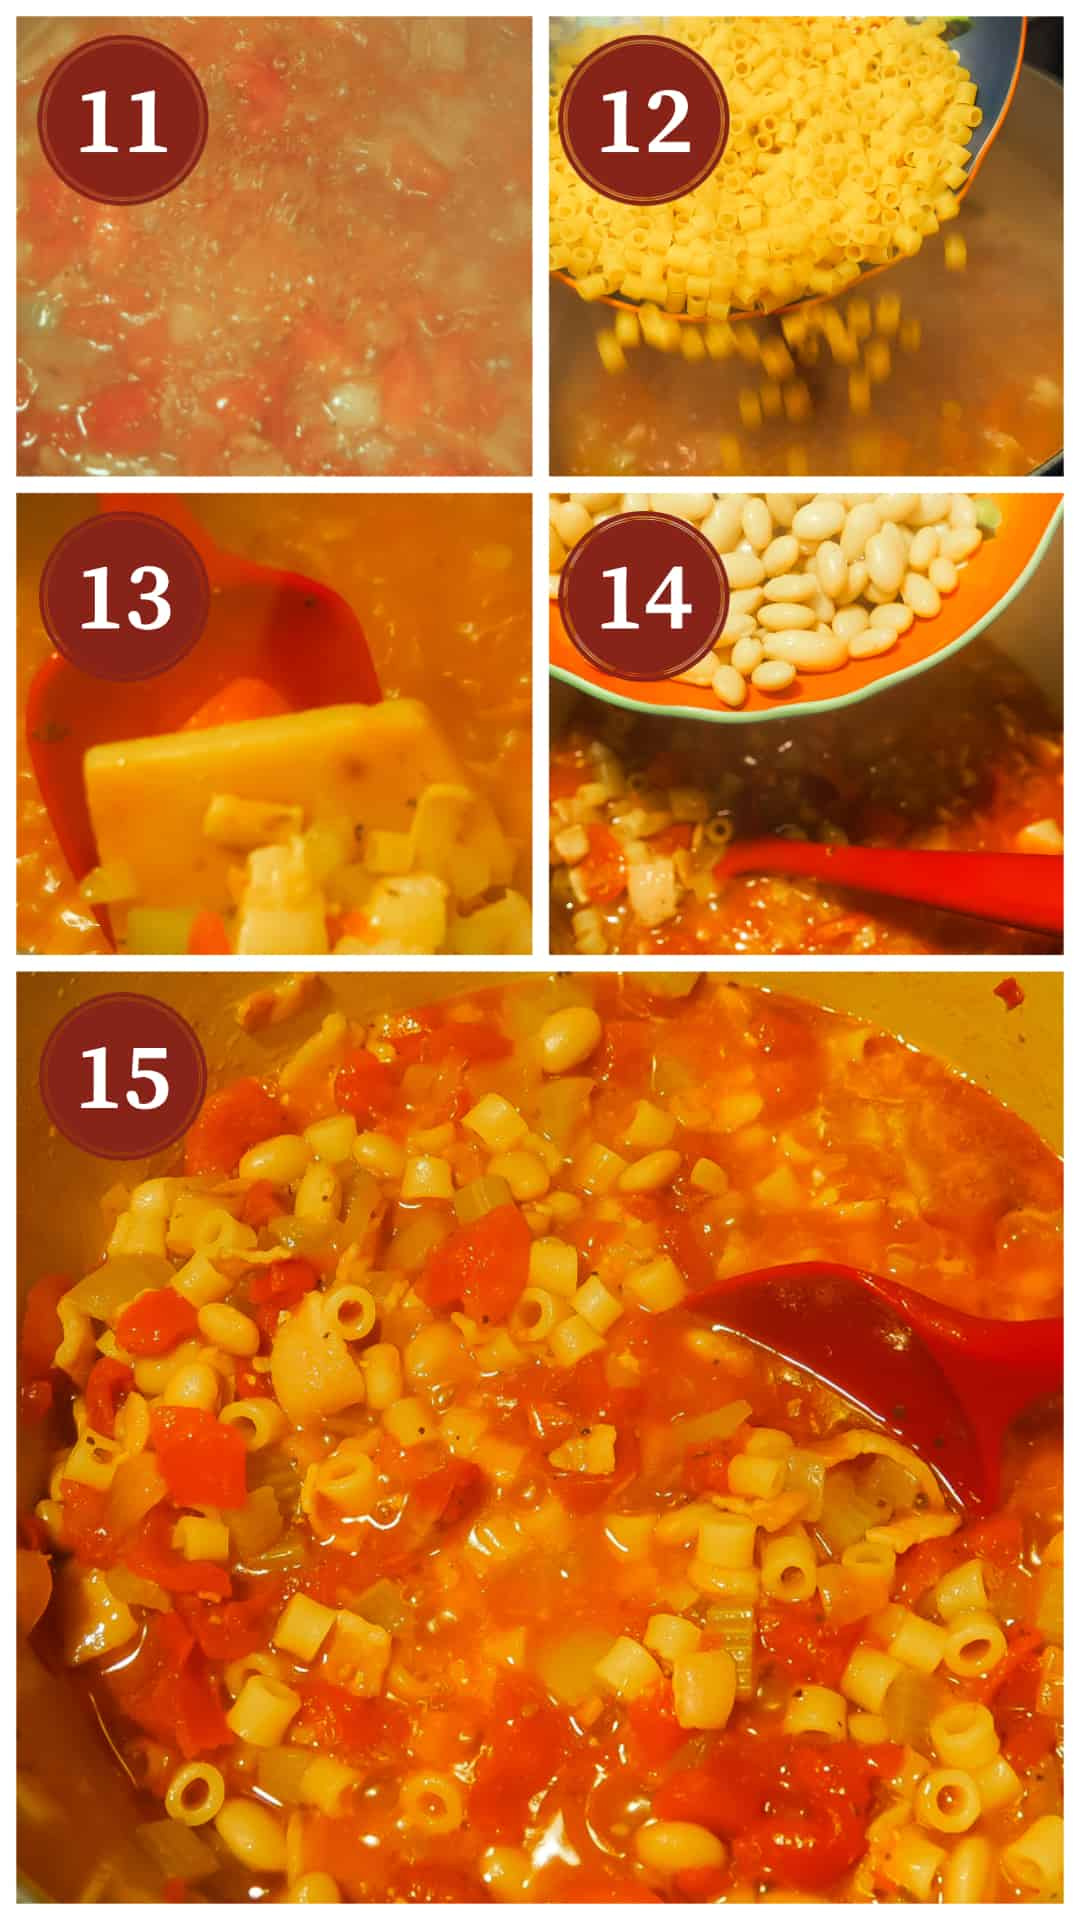 Images of the process of making pasta e fagioli, steps 11 - 15.